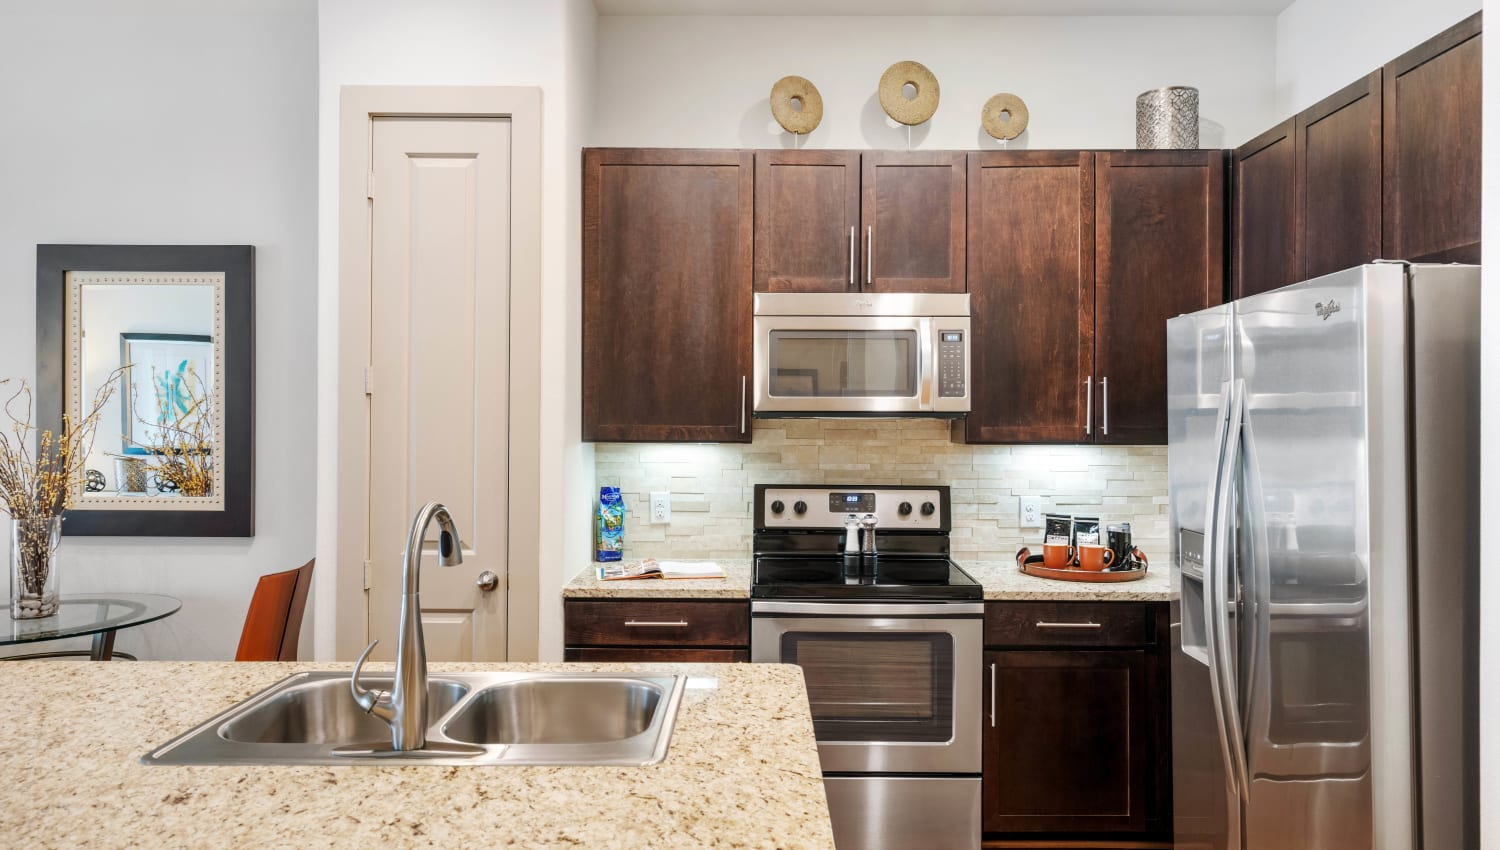 Model apartment's kitchen with a dual-basin sink and stainless-steel appliances at Olympus Sierra Pines in The Woodlands, Texas